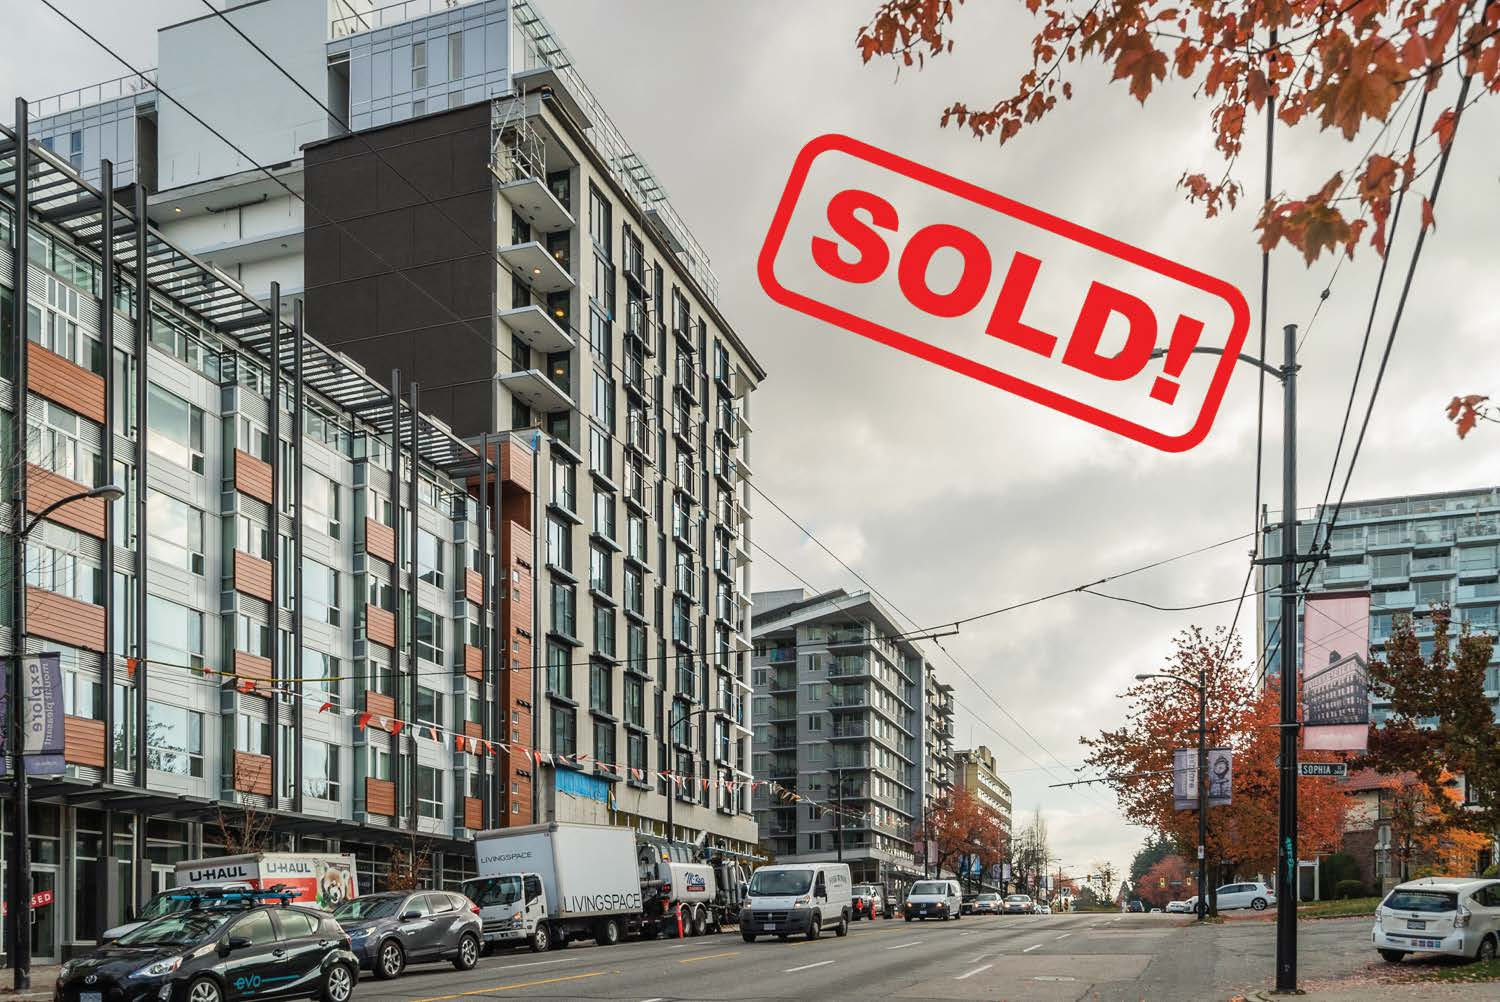 201-233 Kingsway   sold for: $503,000  1 BED | 1 BATH | 509 SF